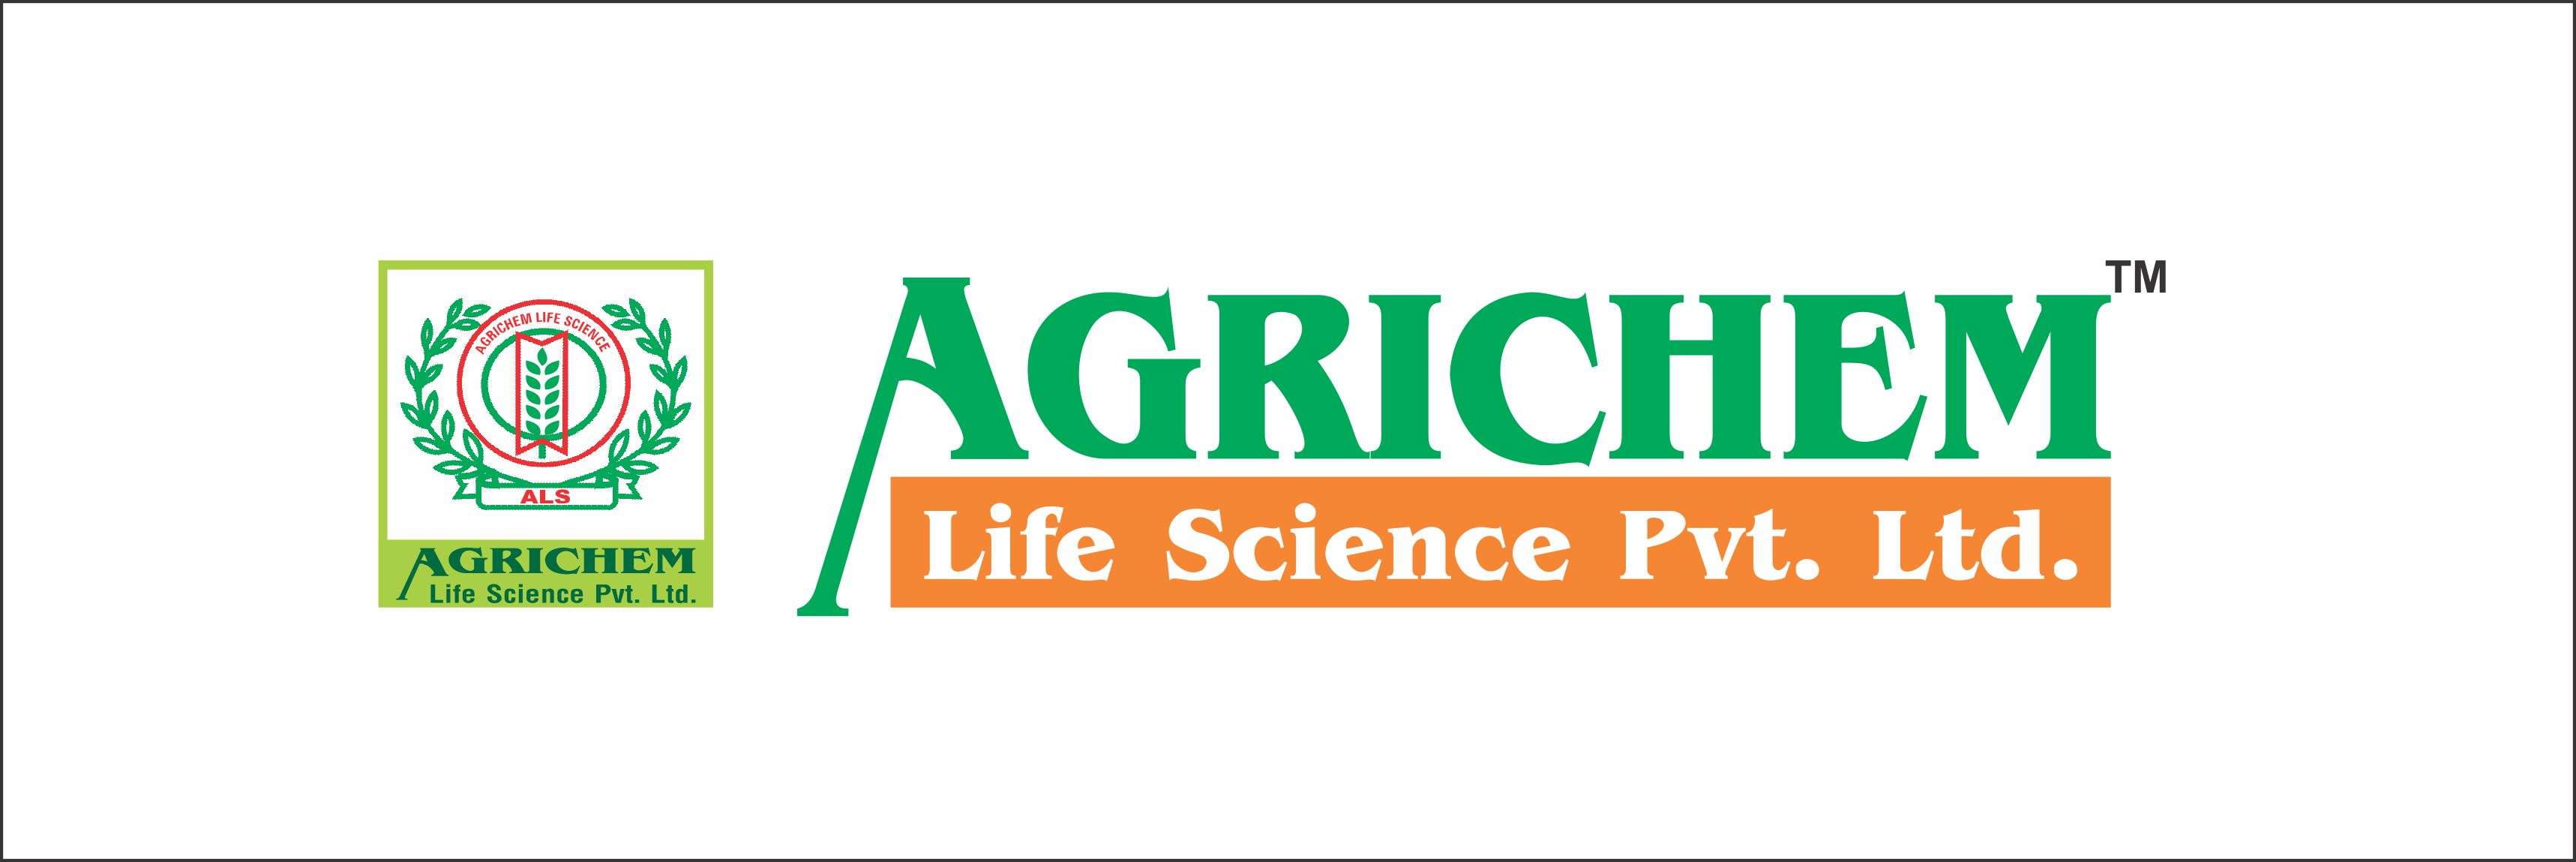 Agrichem Life Science